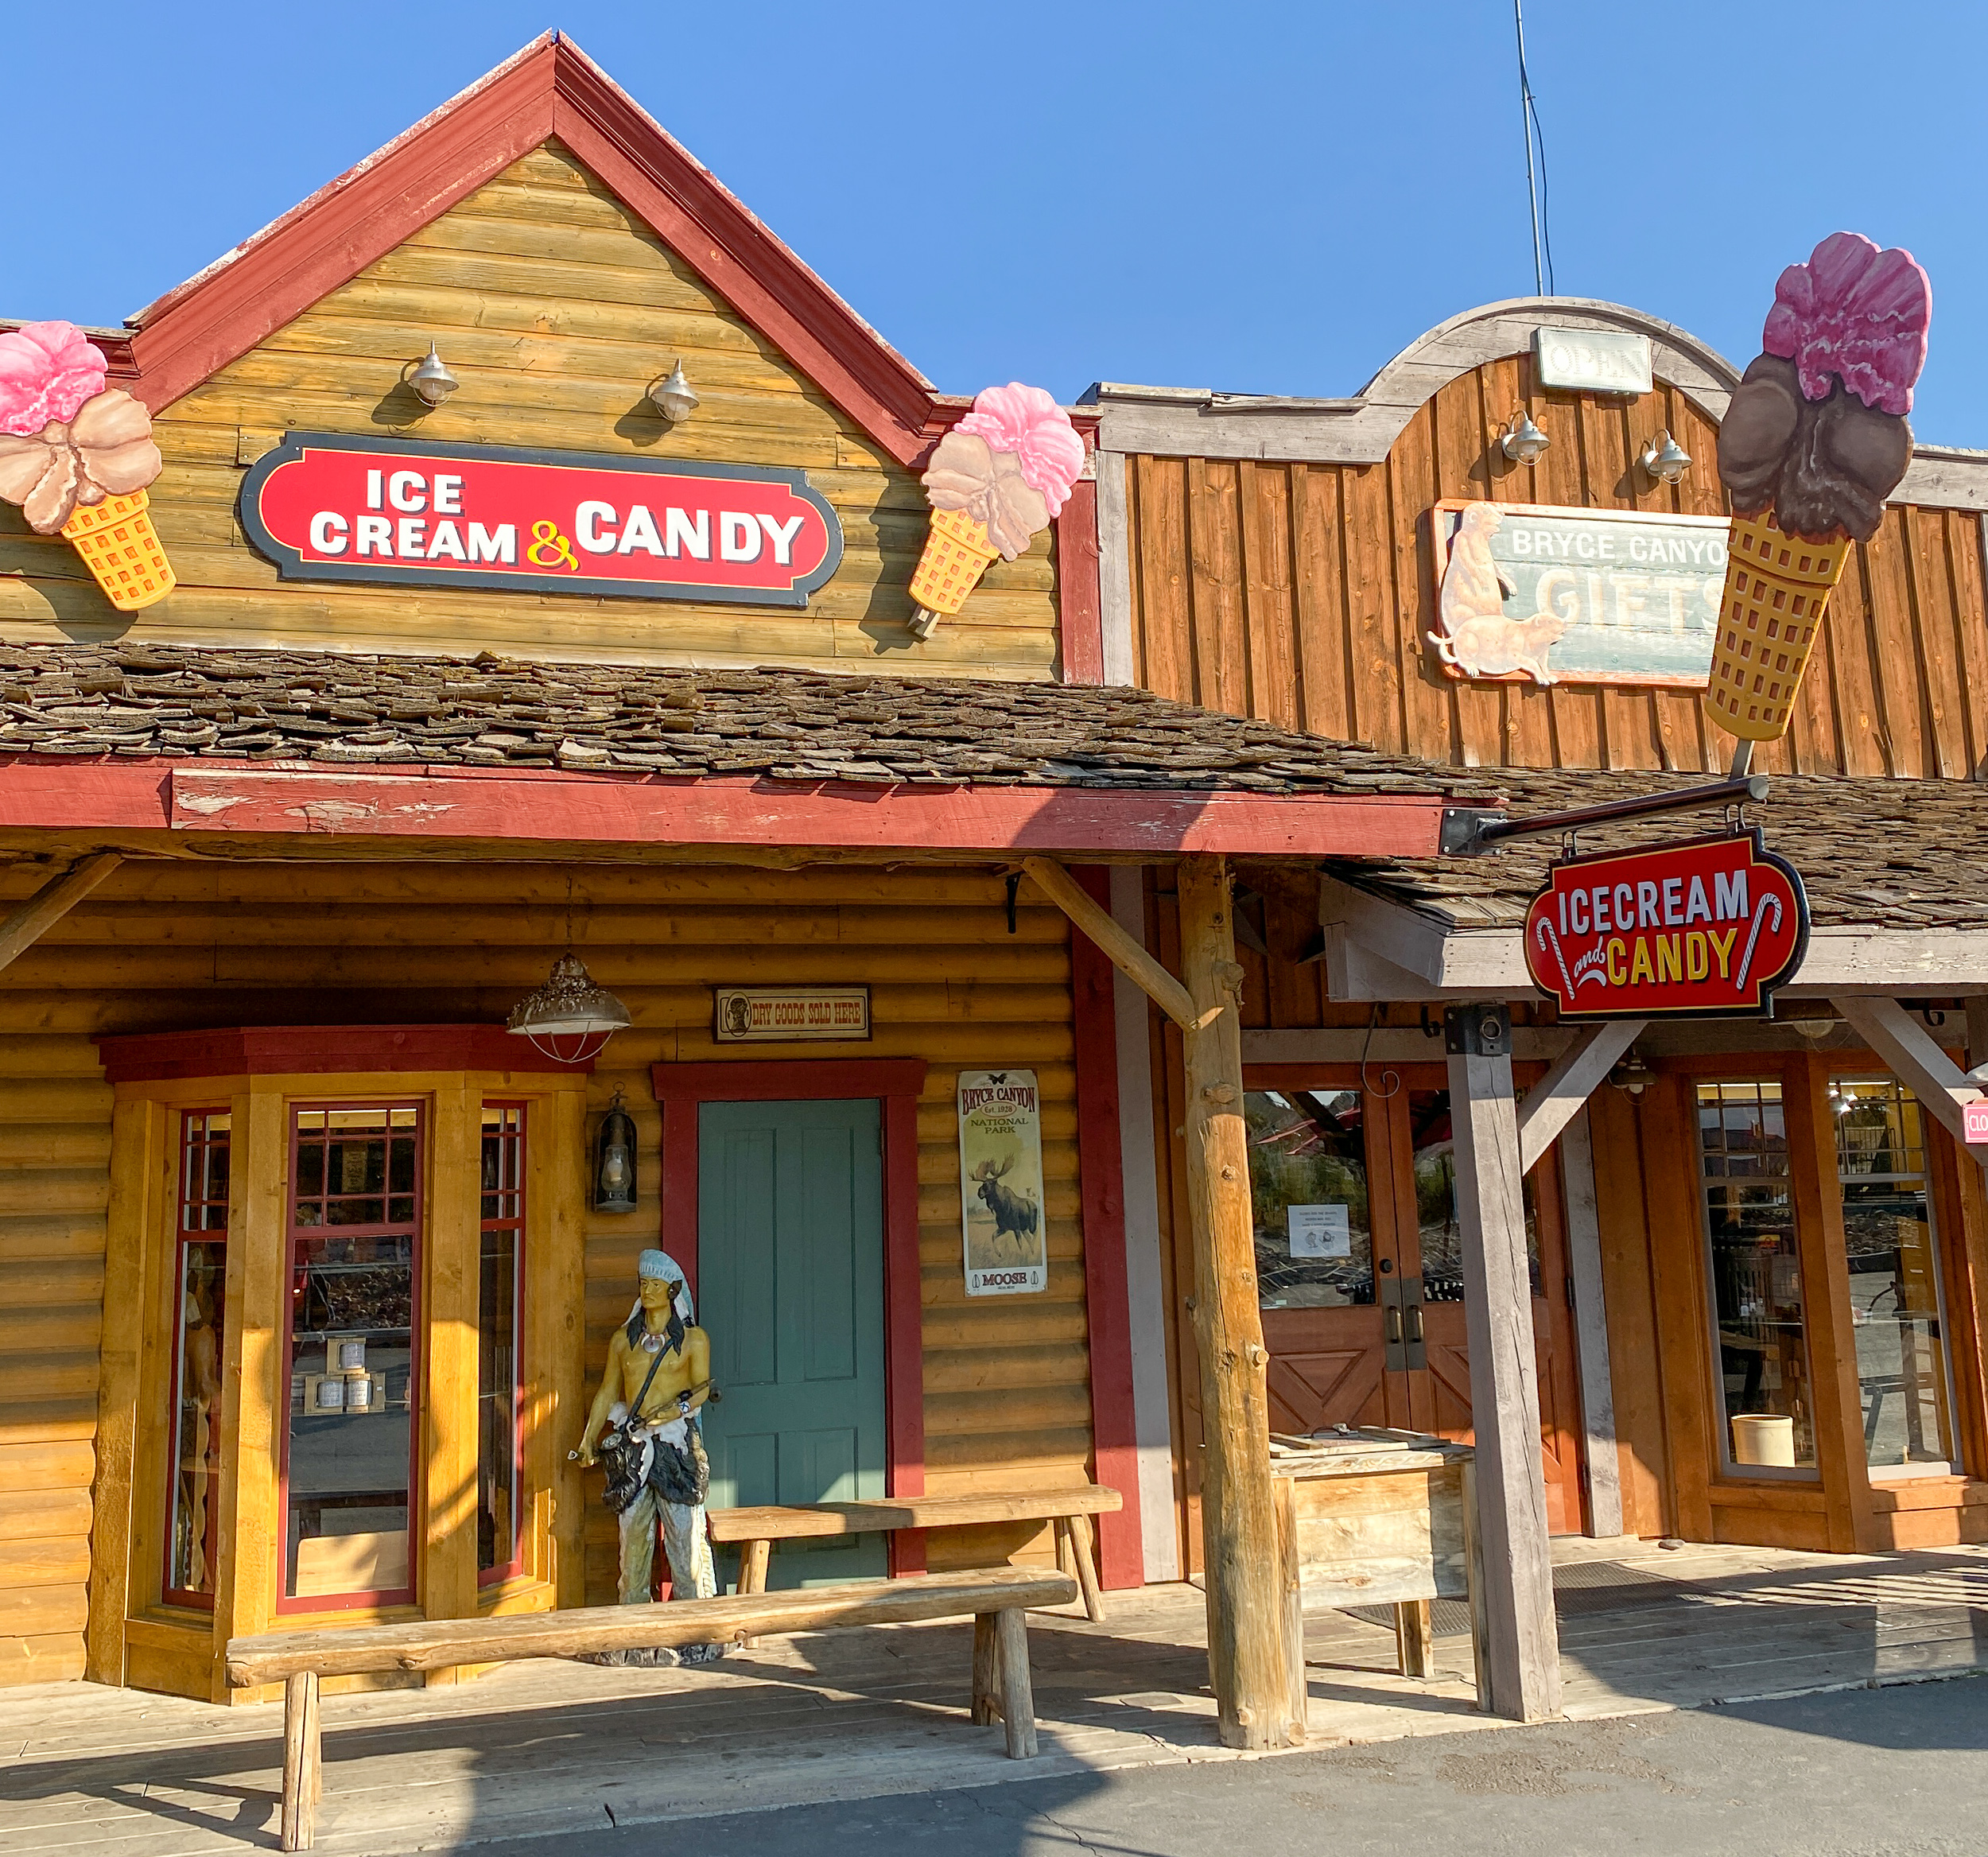 Ruby's Inn near Bryce Canyon National Park offers shopping, dining and more